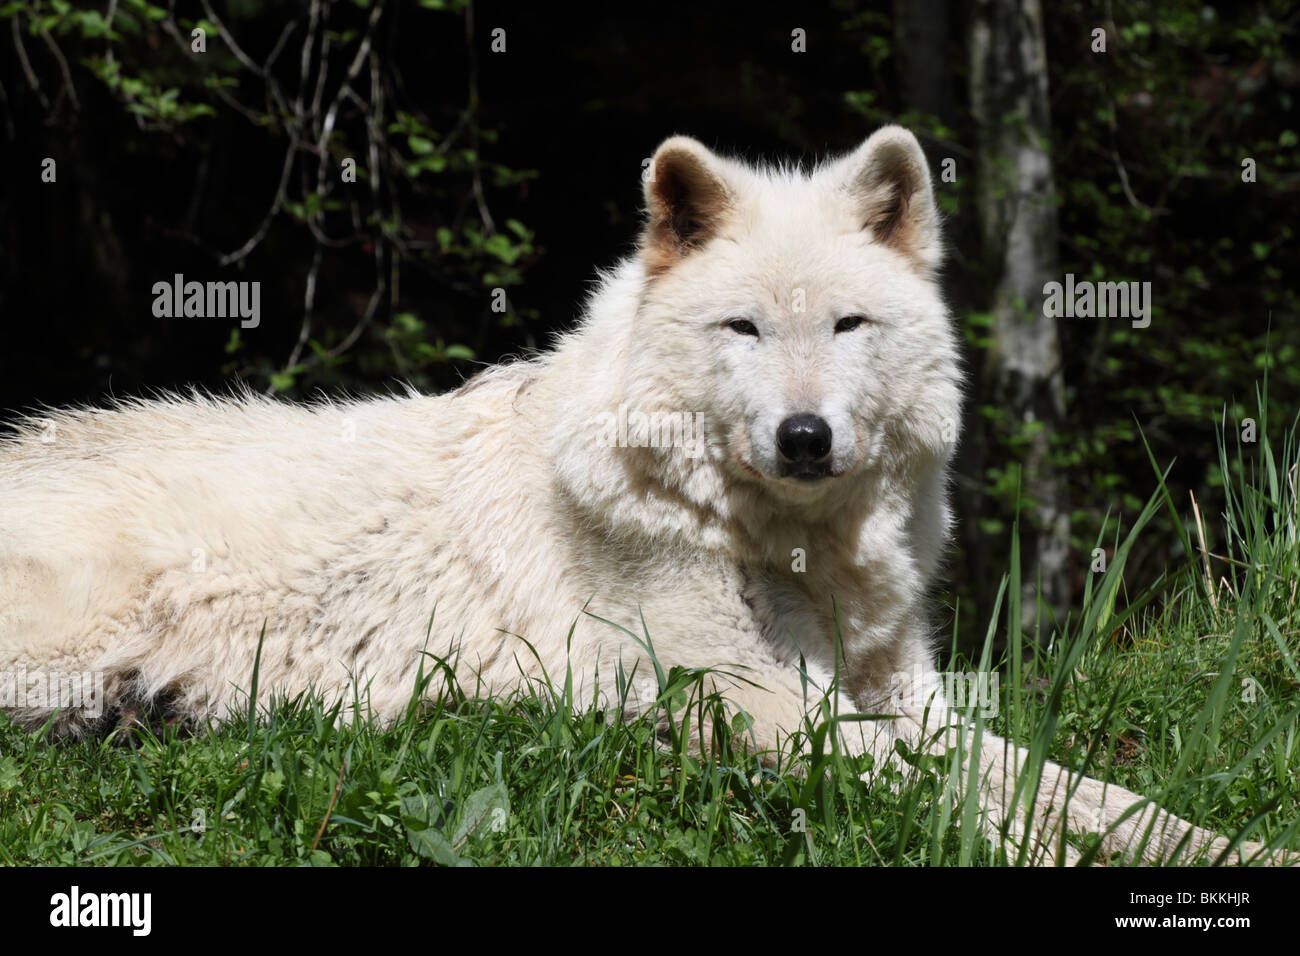 Single white timber wolf laying down on a grass covered ...  Single white ti...